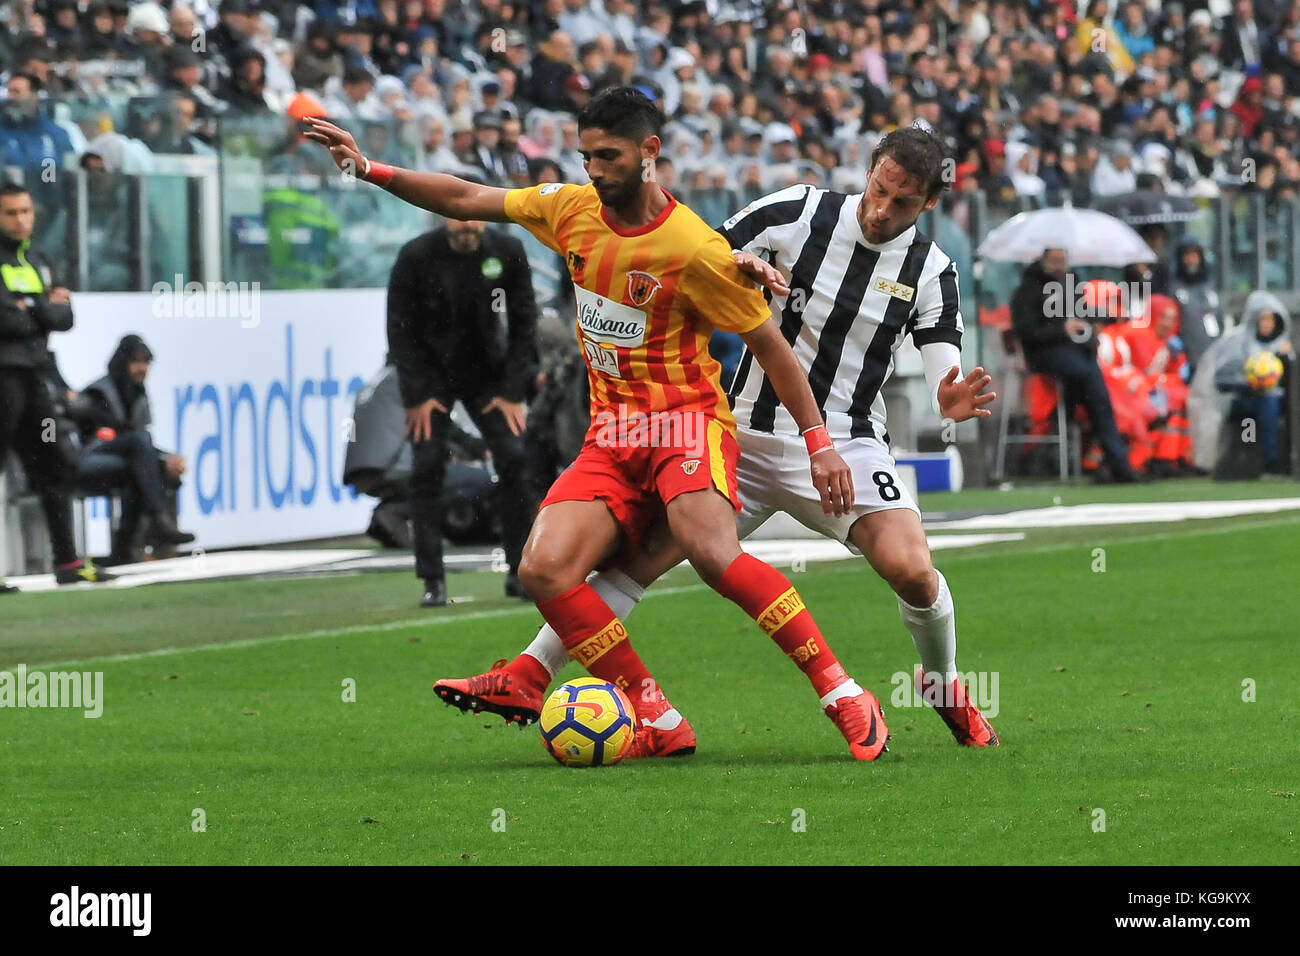 Turin, Italy. 5th November, 2017. during the Serie A football match between Juventus FC and Benevento Calcio at Stock Photo